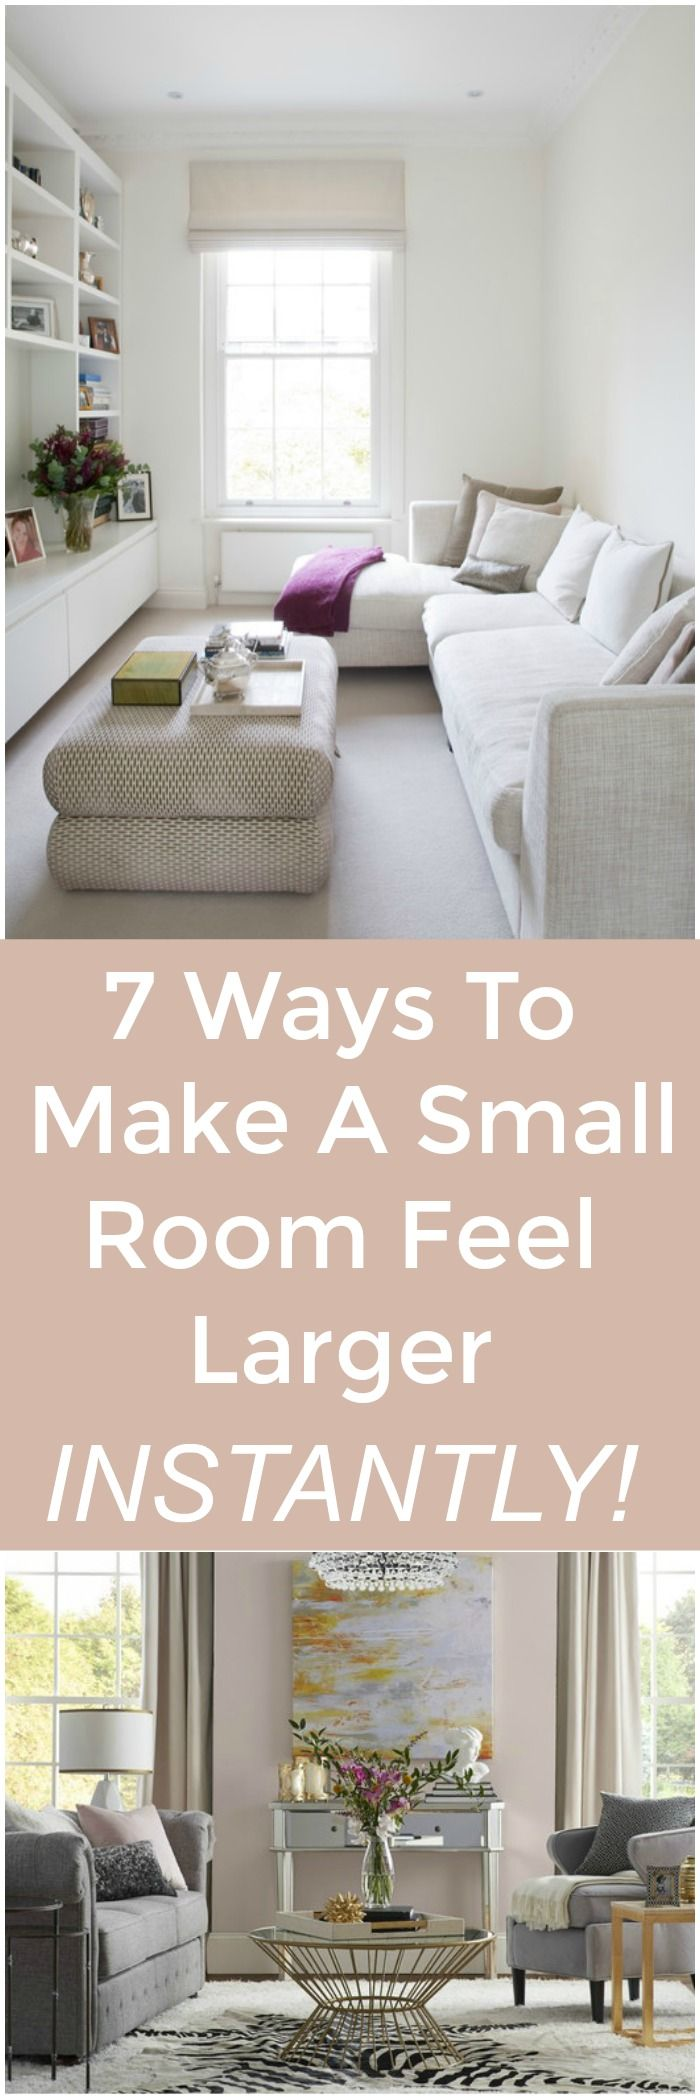 Are you living in a smaller home, condo or apartment? Feeling cramped in that small room you have? Learn 7 Ways To Make A Small Room Feel Larger Instantly! Create a feeling of brightness and visually expand your rooms with these design tips; by using lighting, mirrors and decor in strategic ways. Read my tips on how to banish that cramped , cave-like feeling and get the spaciousness you crave!